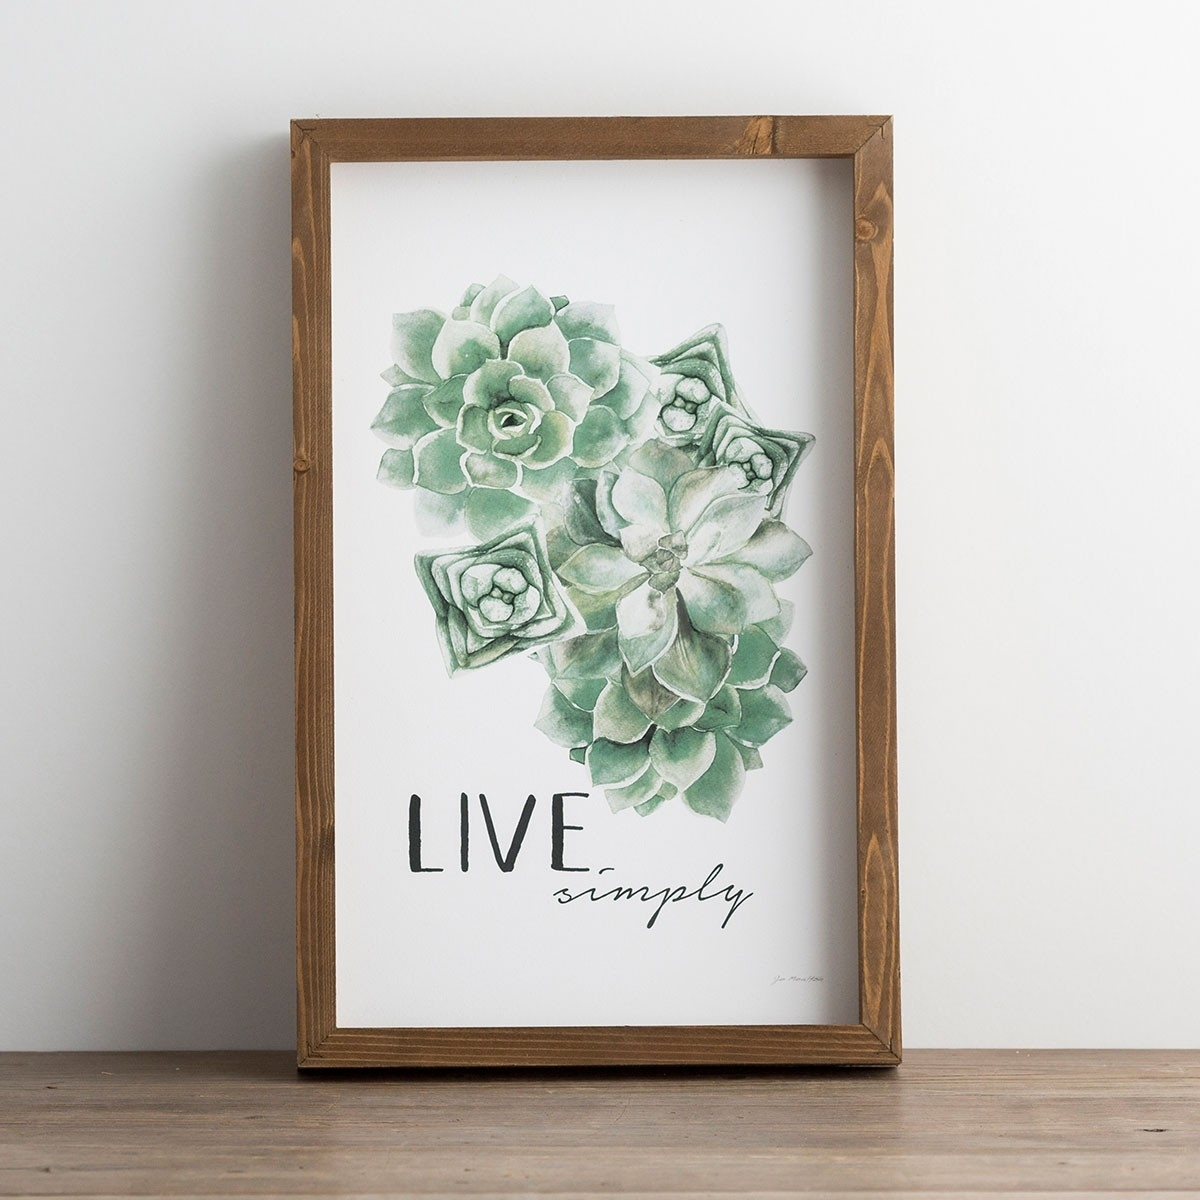 Live Simply - Succulent Framed Wall Art | Dayspring pertaining to Succulent Wall Art (Image 10 of 20)